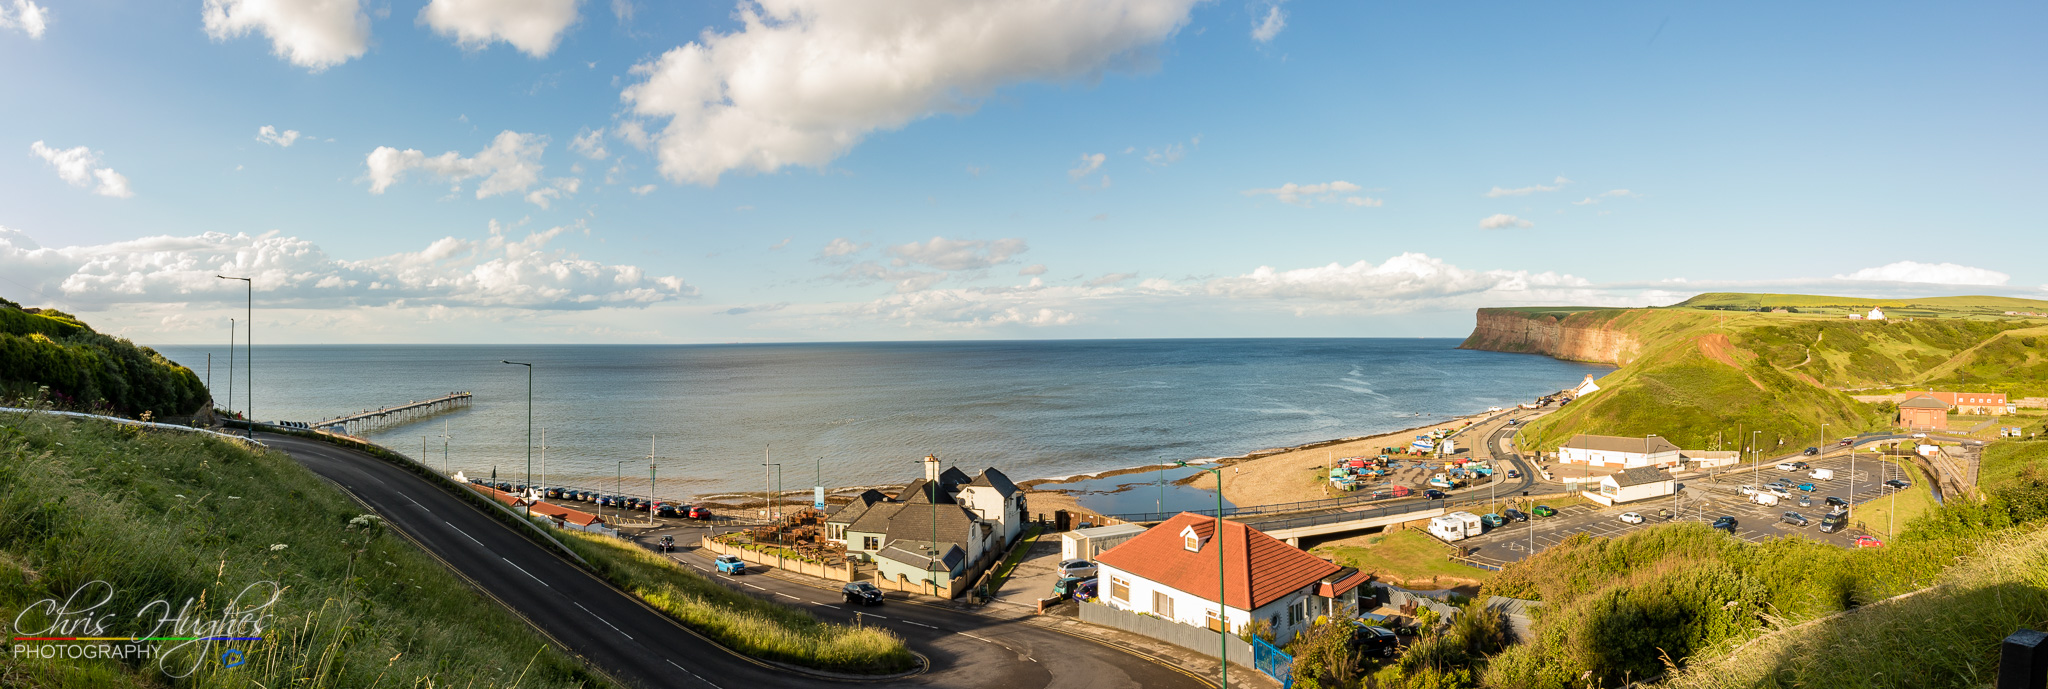 A view over Saltburn-by-the-Sea bay